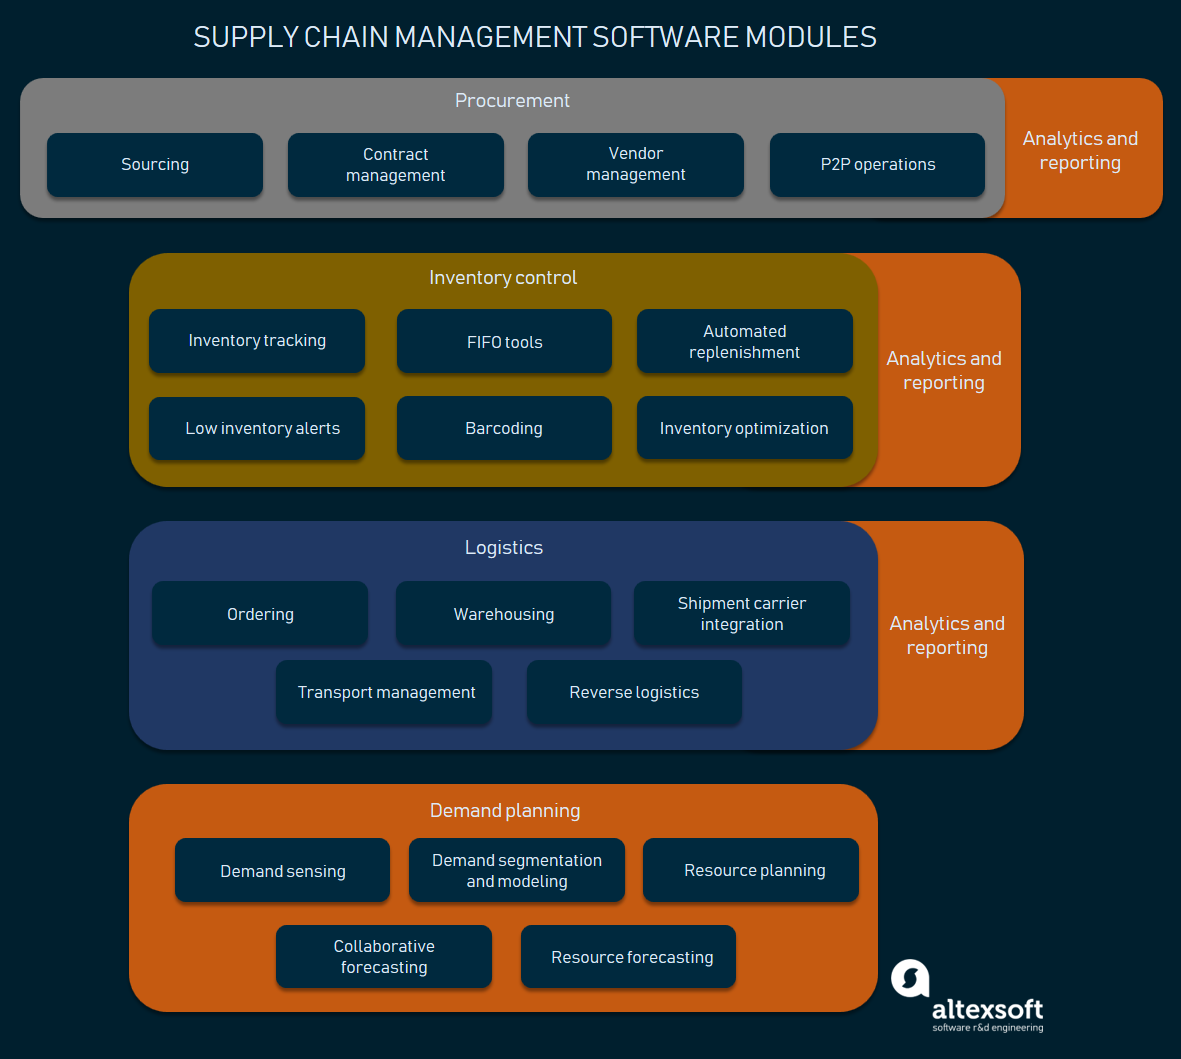 supply chain management software modules